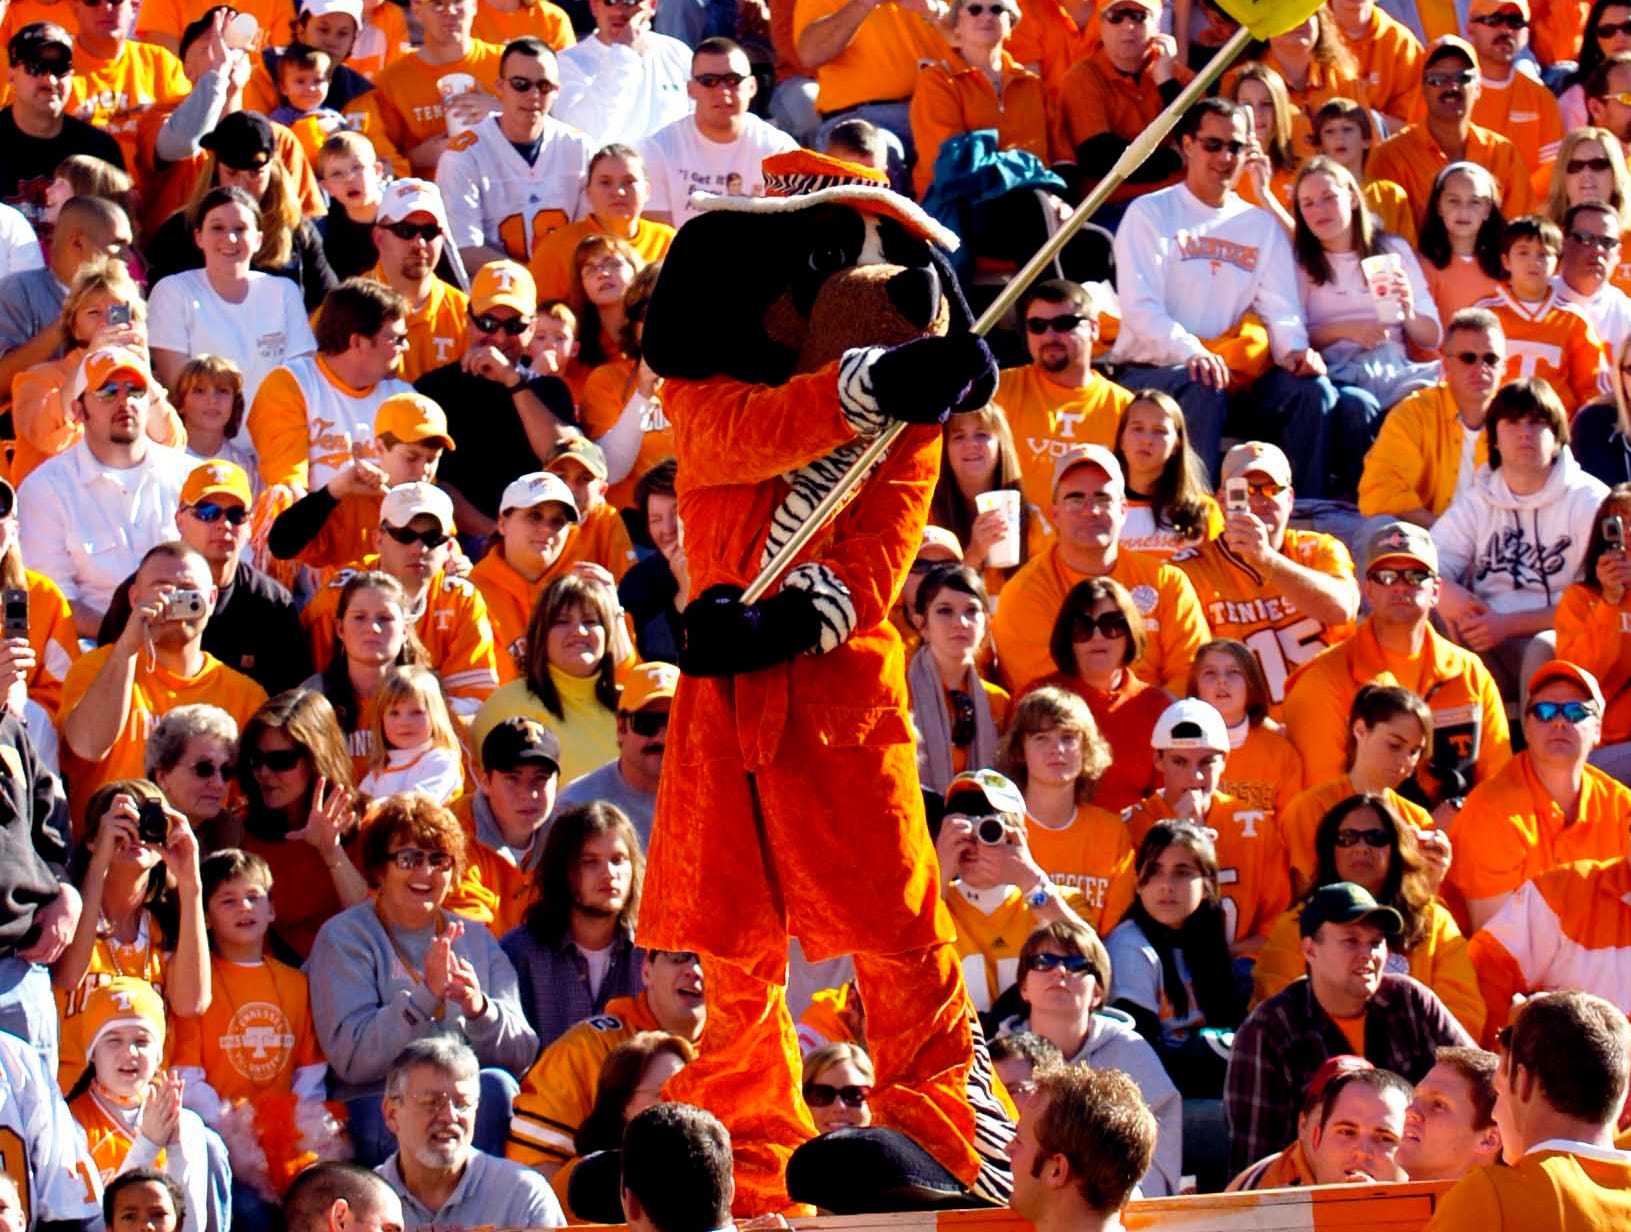 Smokey campaigns for the Capital One Mascot of the Year title during the Kentucky game Saturday at Neyland Stadium in 2006.